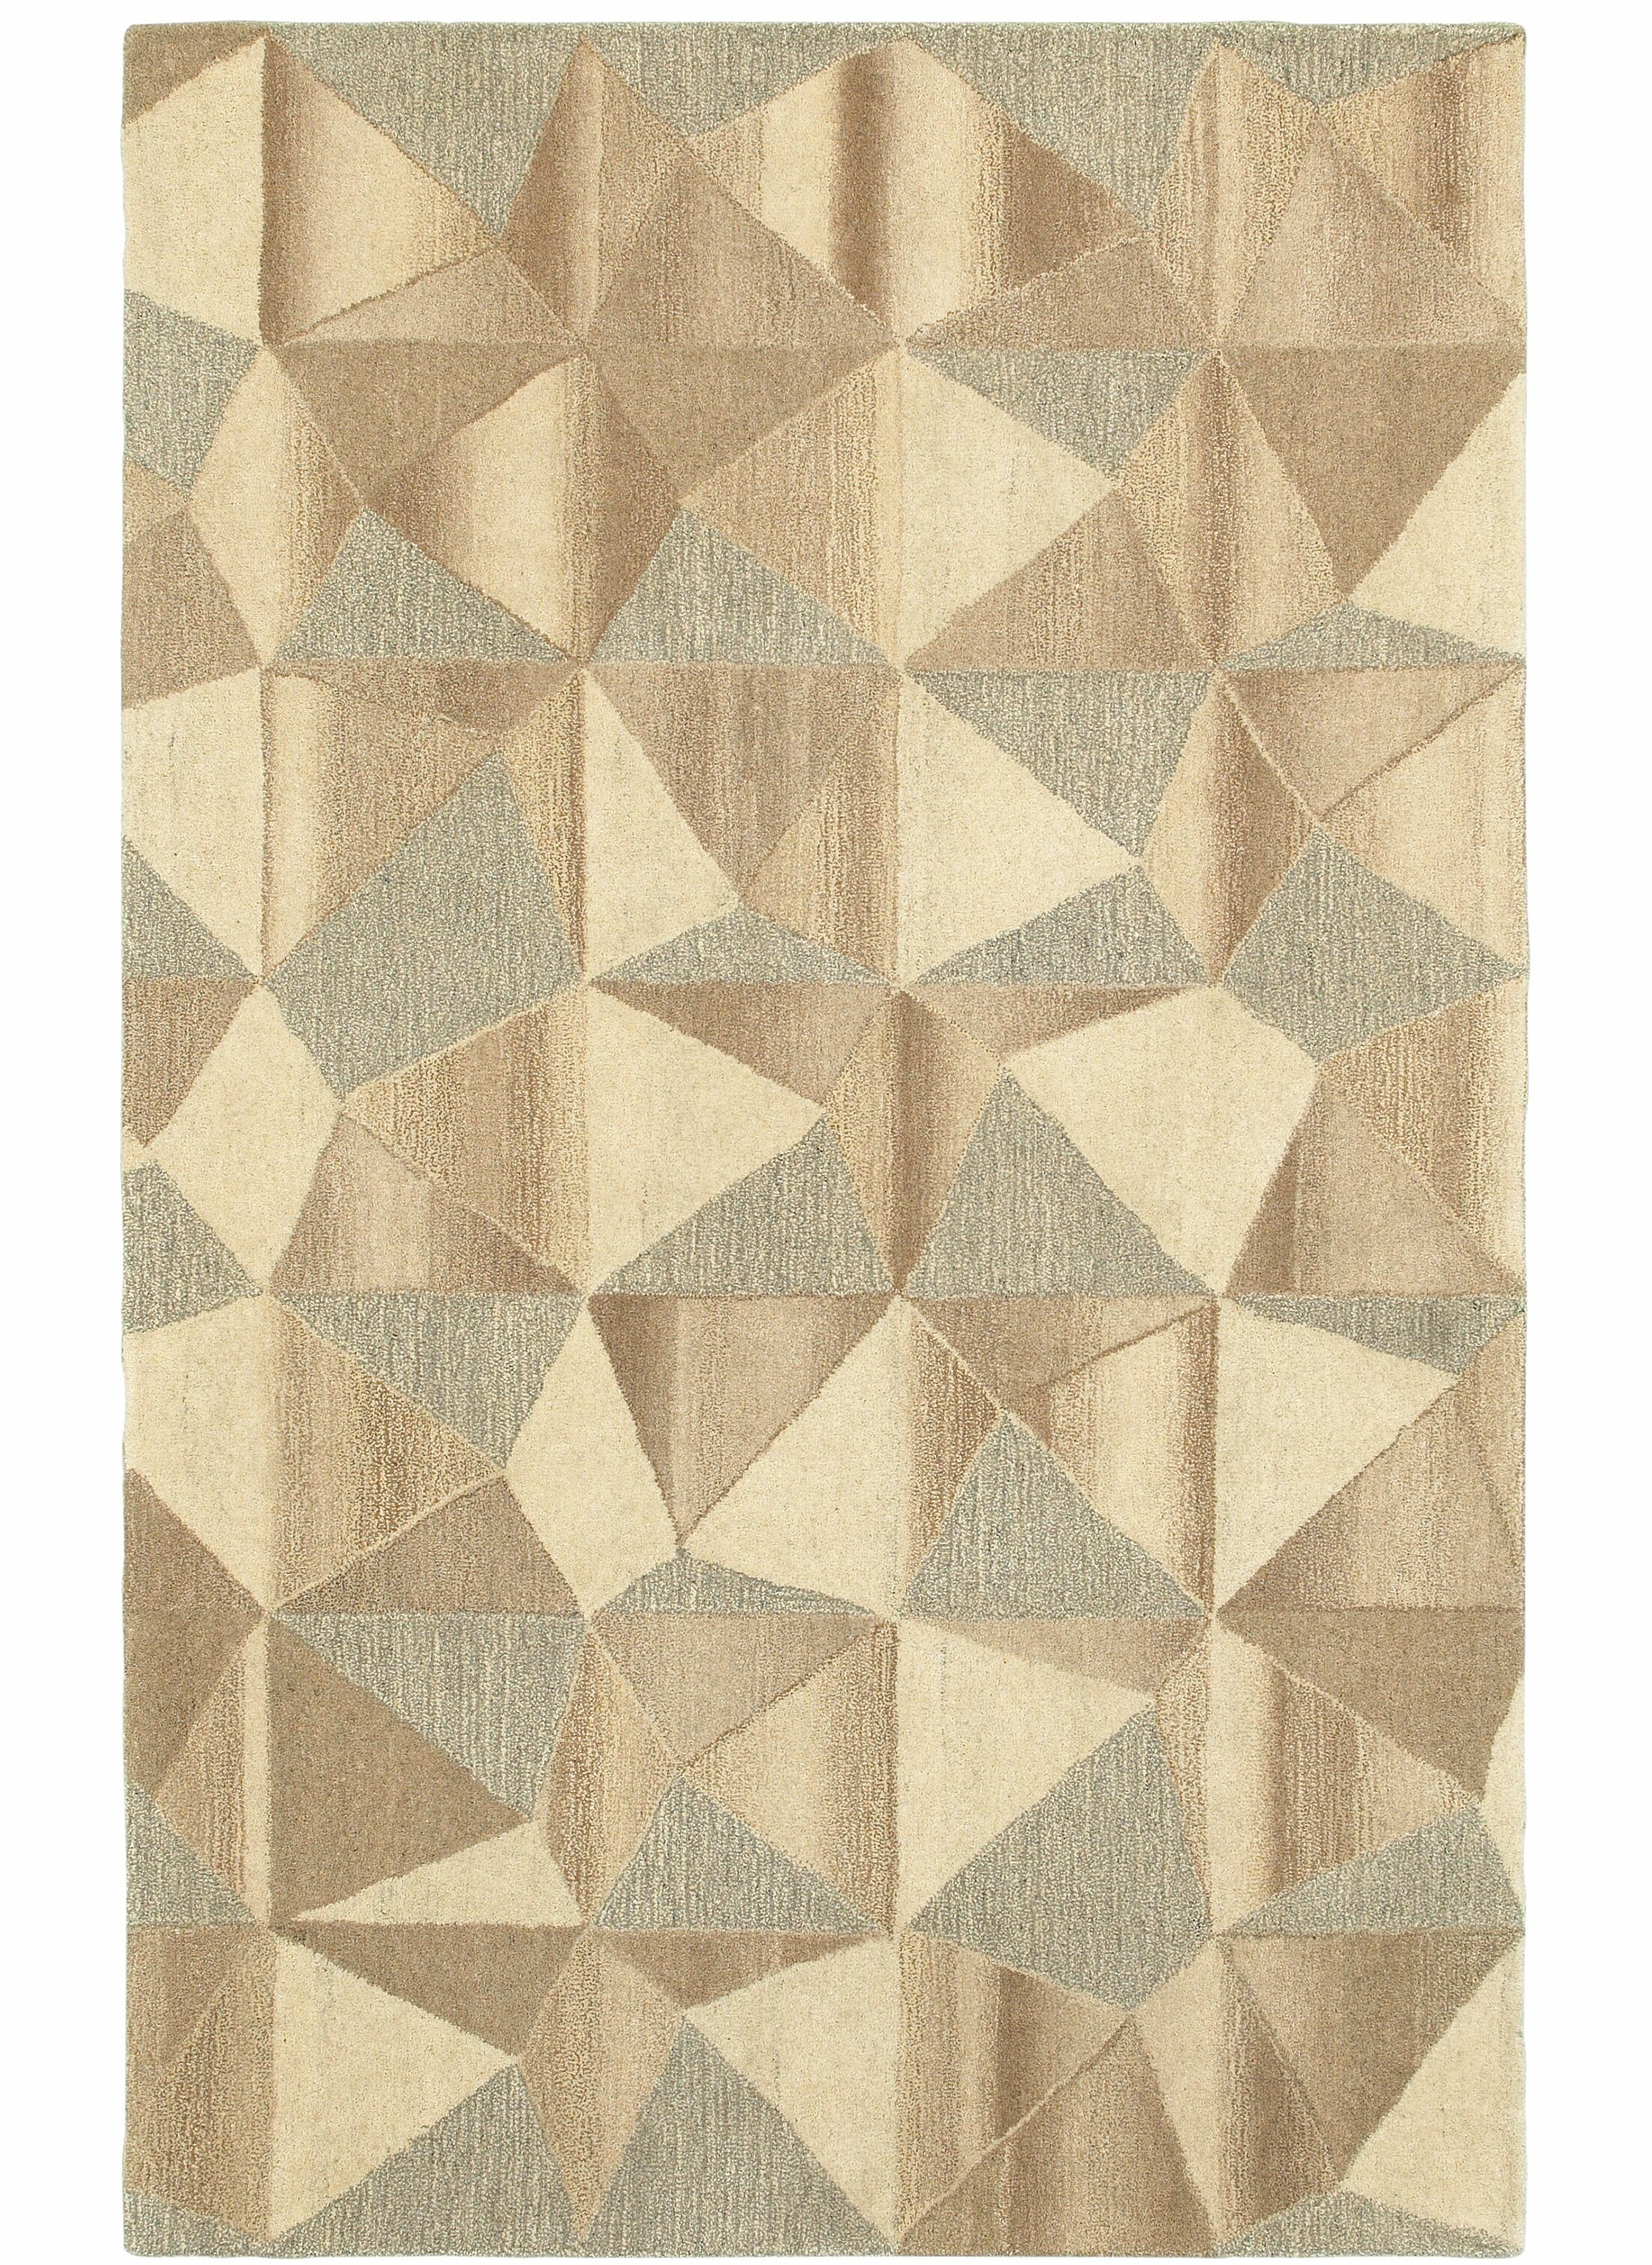 Frank Hand-Tufted Wool Beige Area Rug Rug Size: Rectangle 3'6